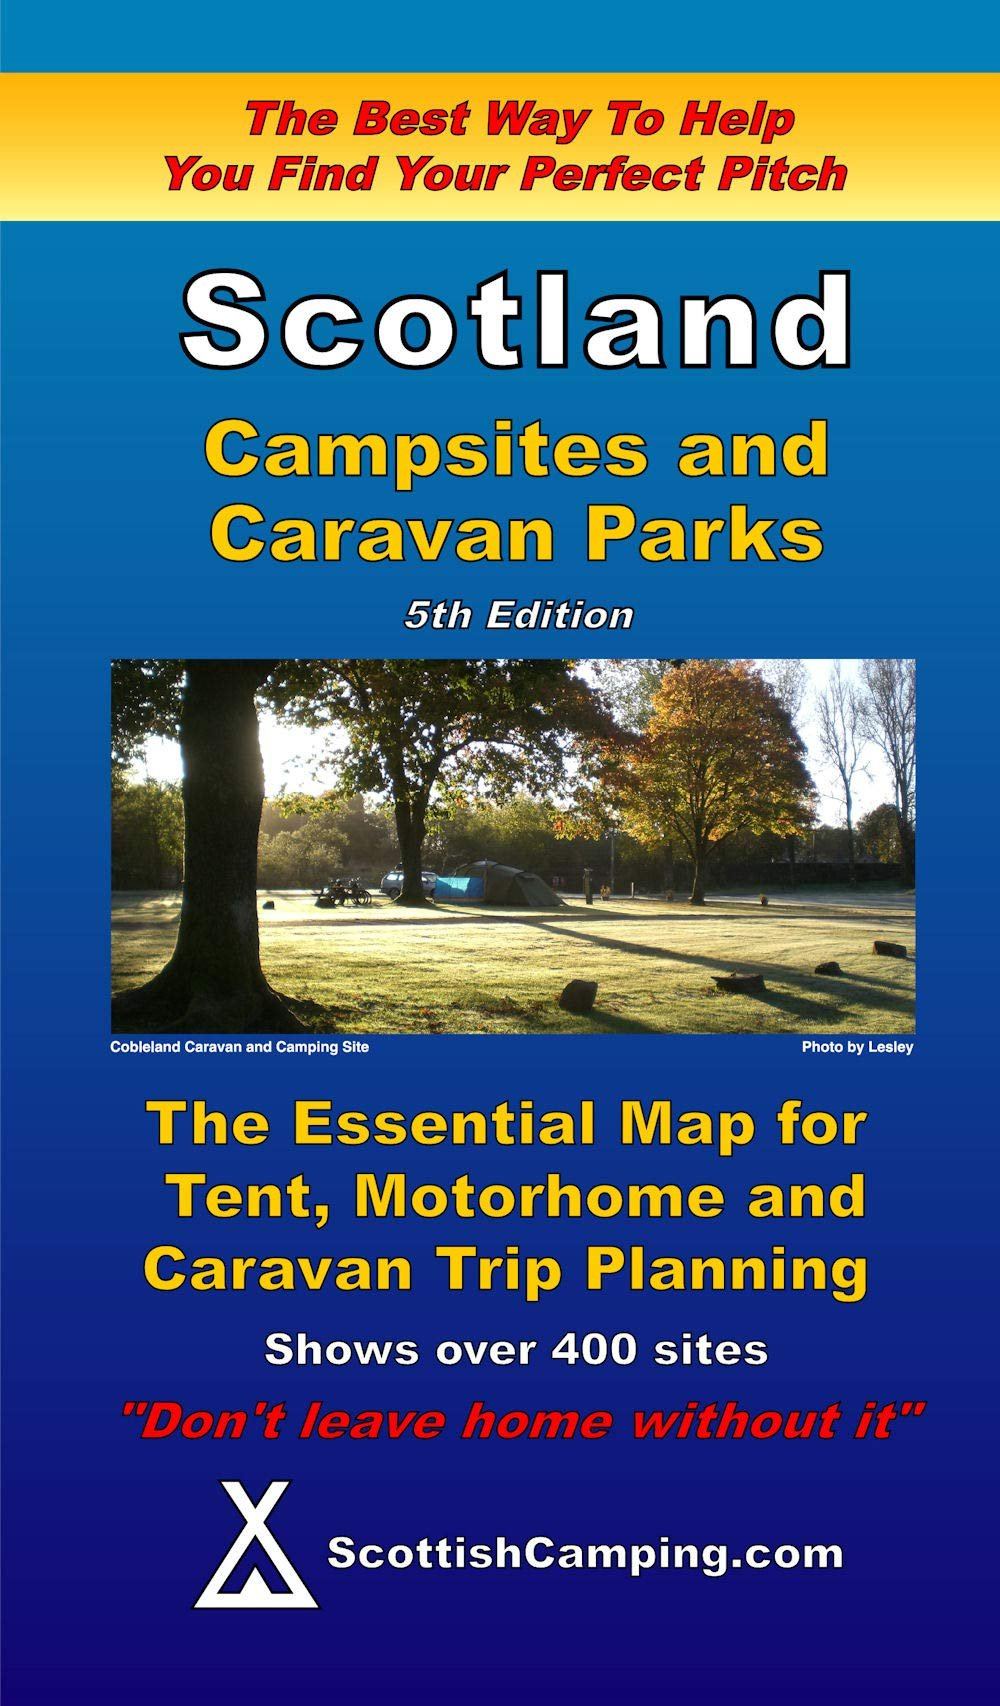 Scotland - Campsites and Caravan Parks Map 9780955304965  Scottish Camping.Com Ltd   Campinggidsen Schotland